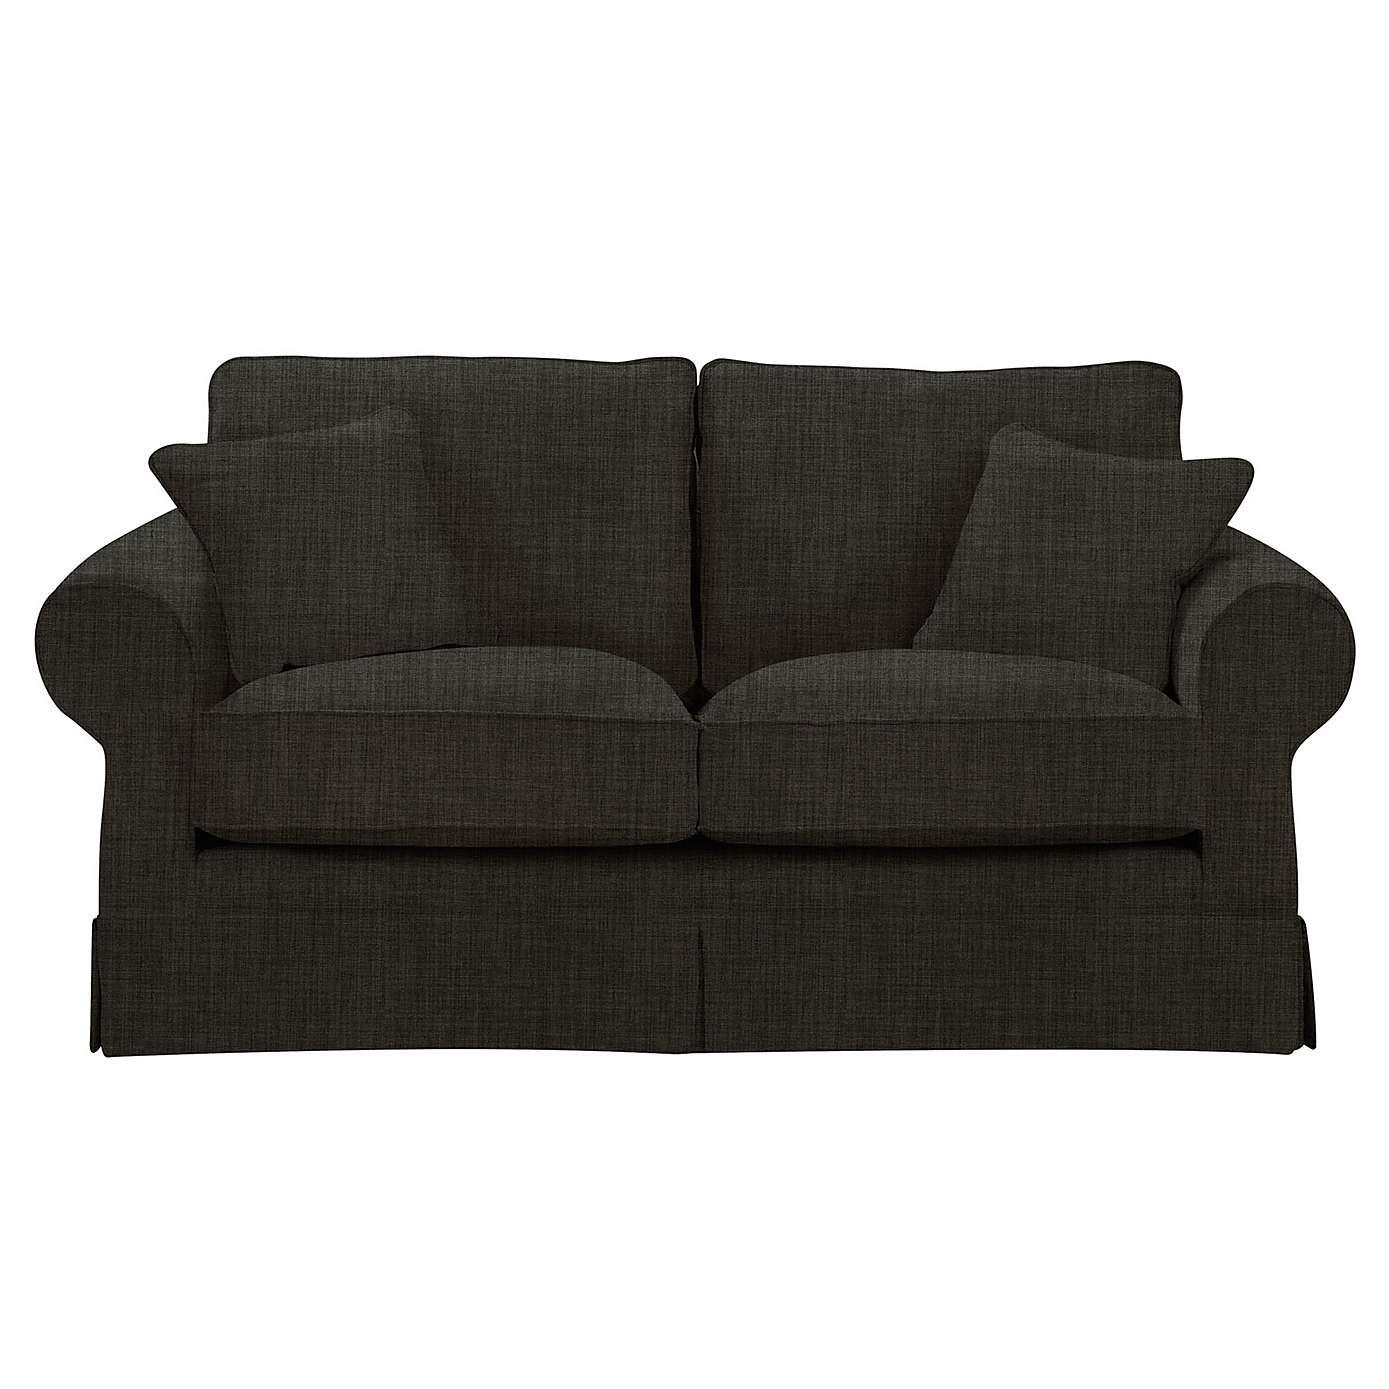 Leather Sleeper Sofa Home Furniture Lounges Fabric Lounges Mansfield Sofa Collection